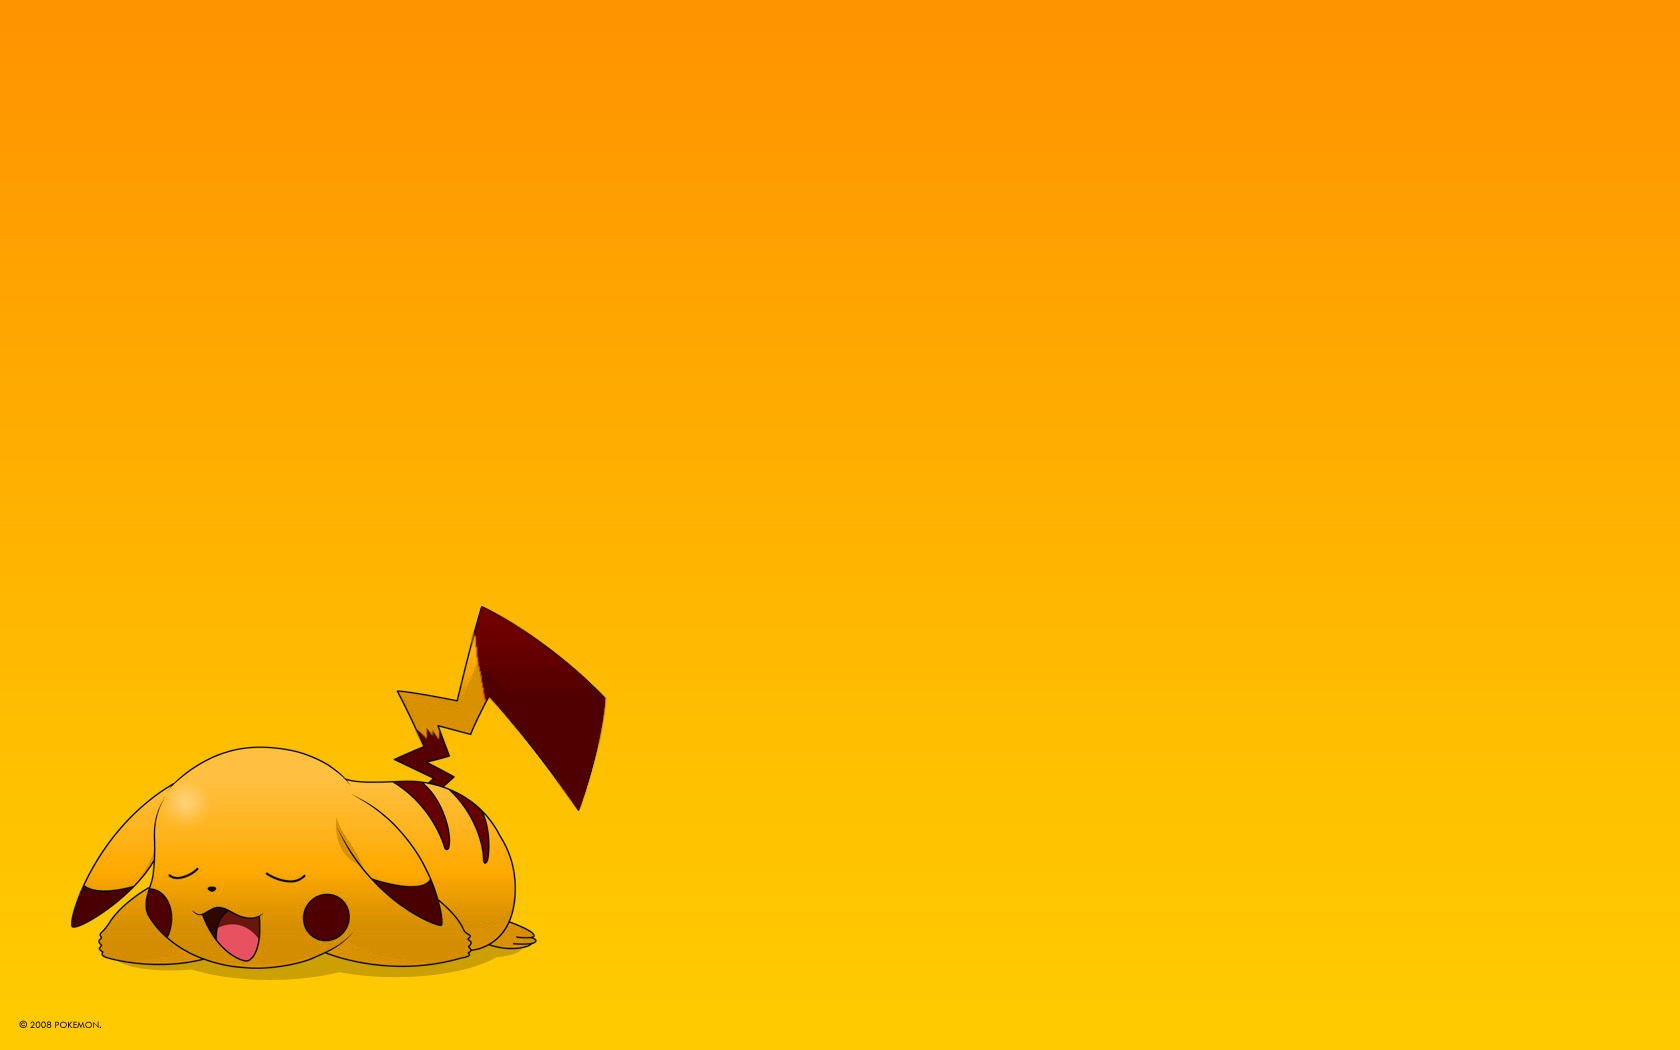 Cute Pikachu Hd Wallpapers Fondos Para Android Especial Pikachu Adnfriki